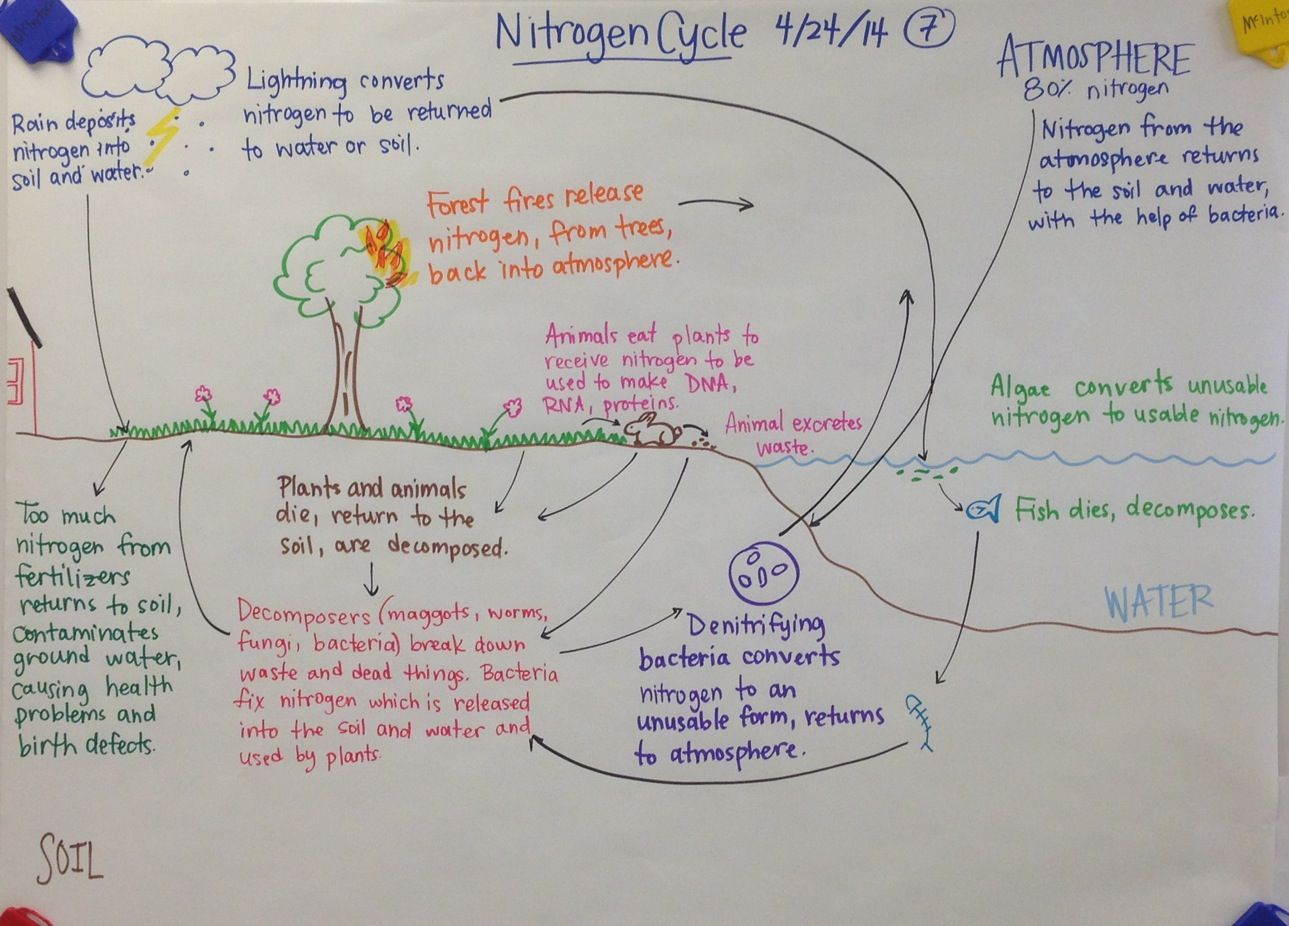 Nitrogen cycle biology glad anchor chart biology pinterest nitrogen cycle biology glad anchor chart ccuart Gallery